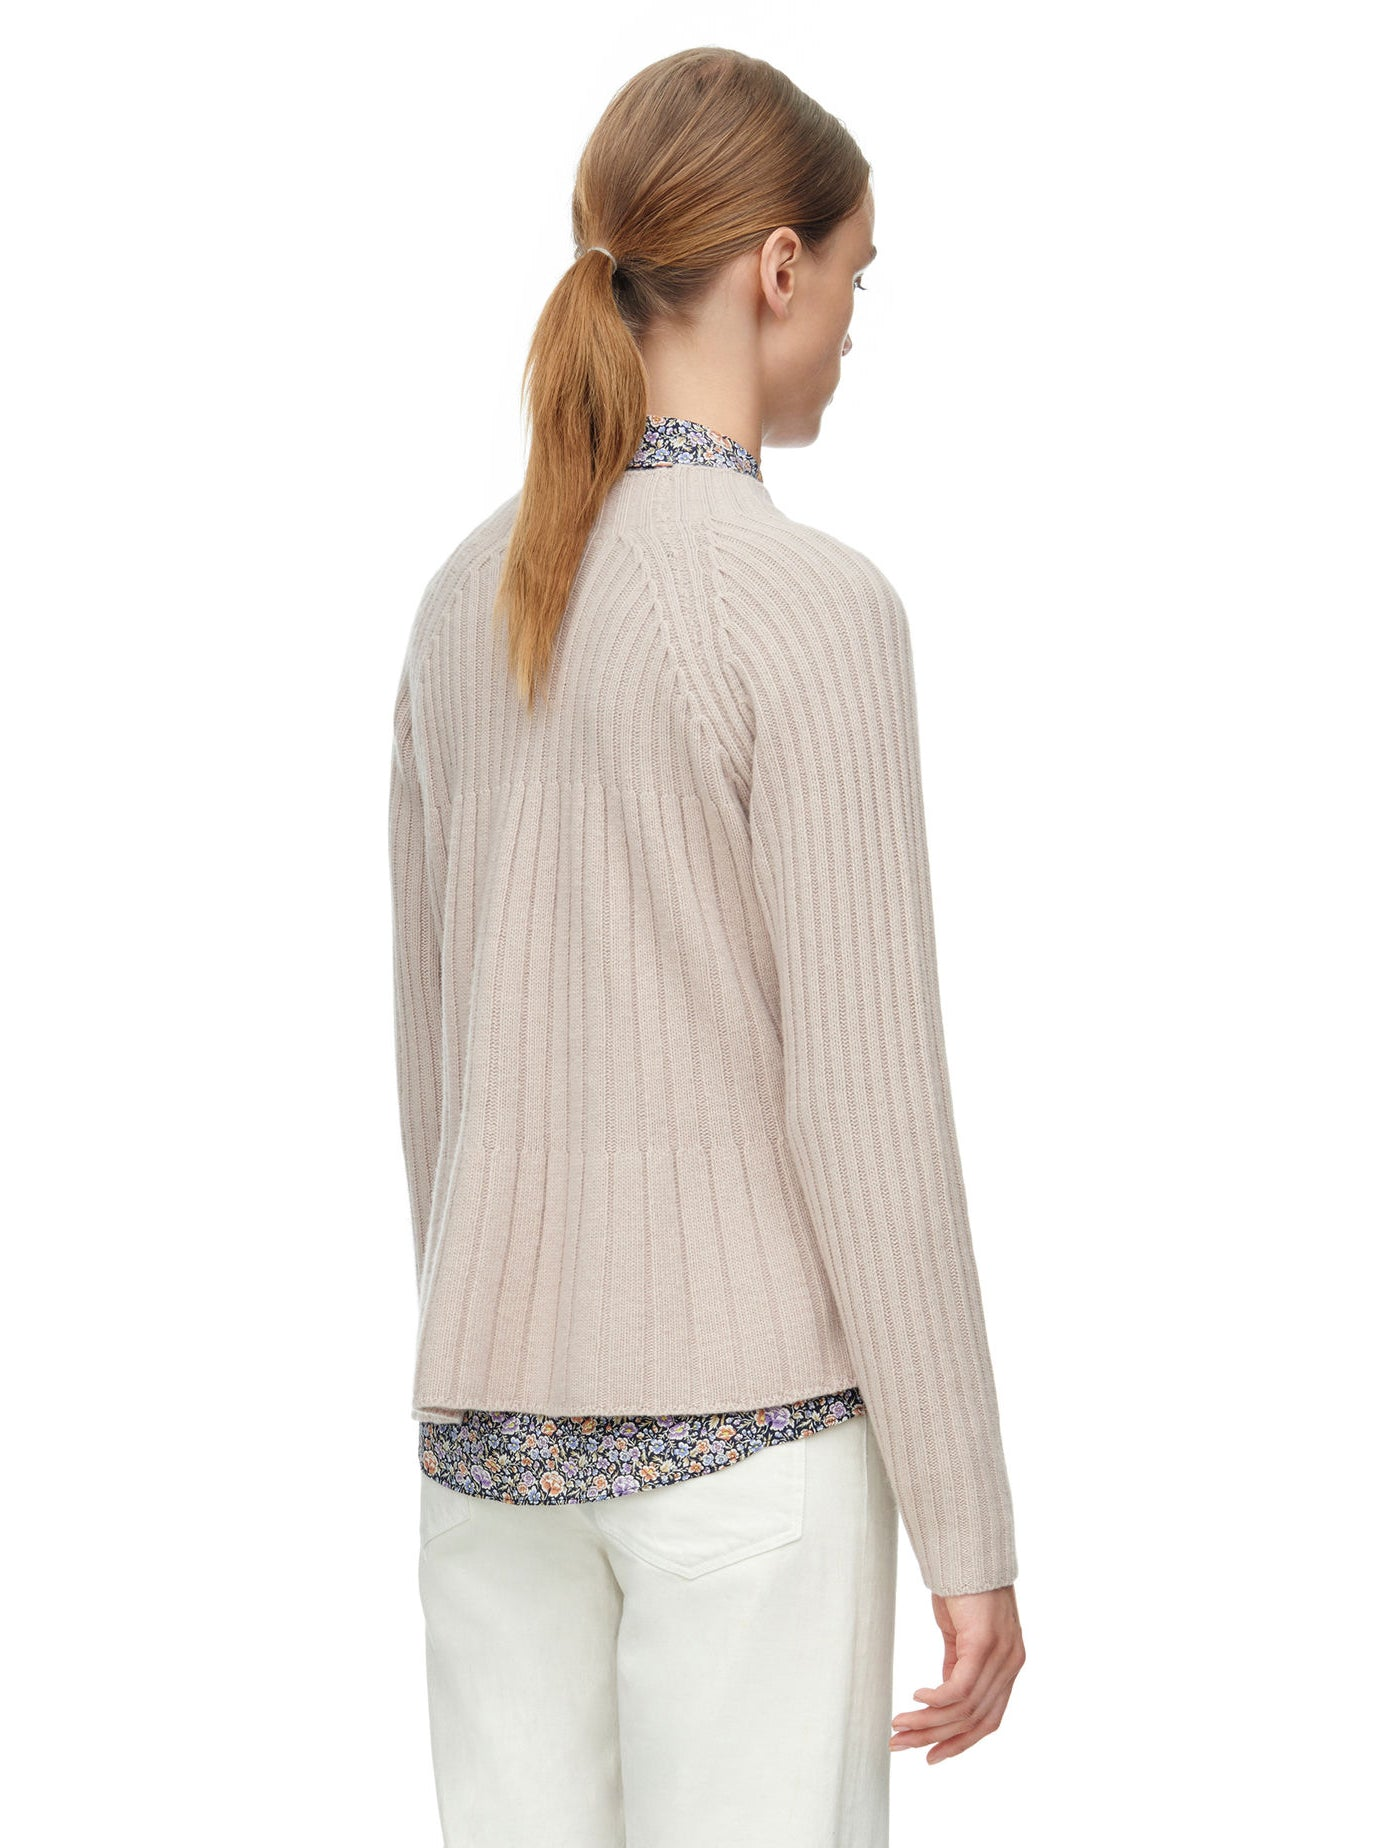 TILDEN | Rebecca Taylor Ribbed Swing Pullover Sweater